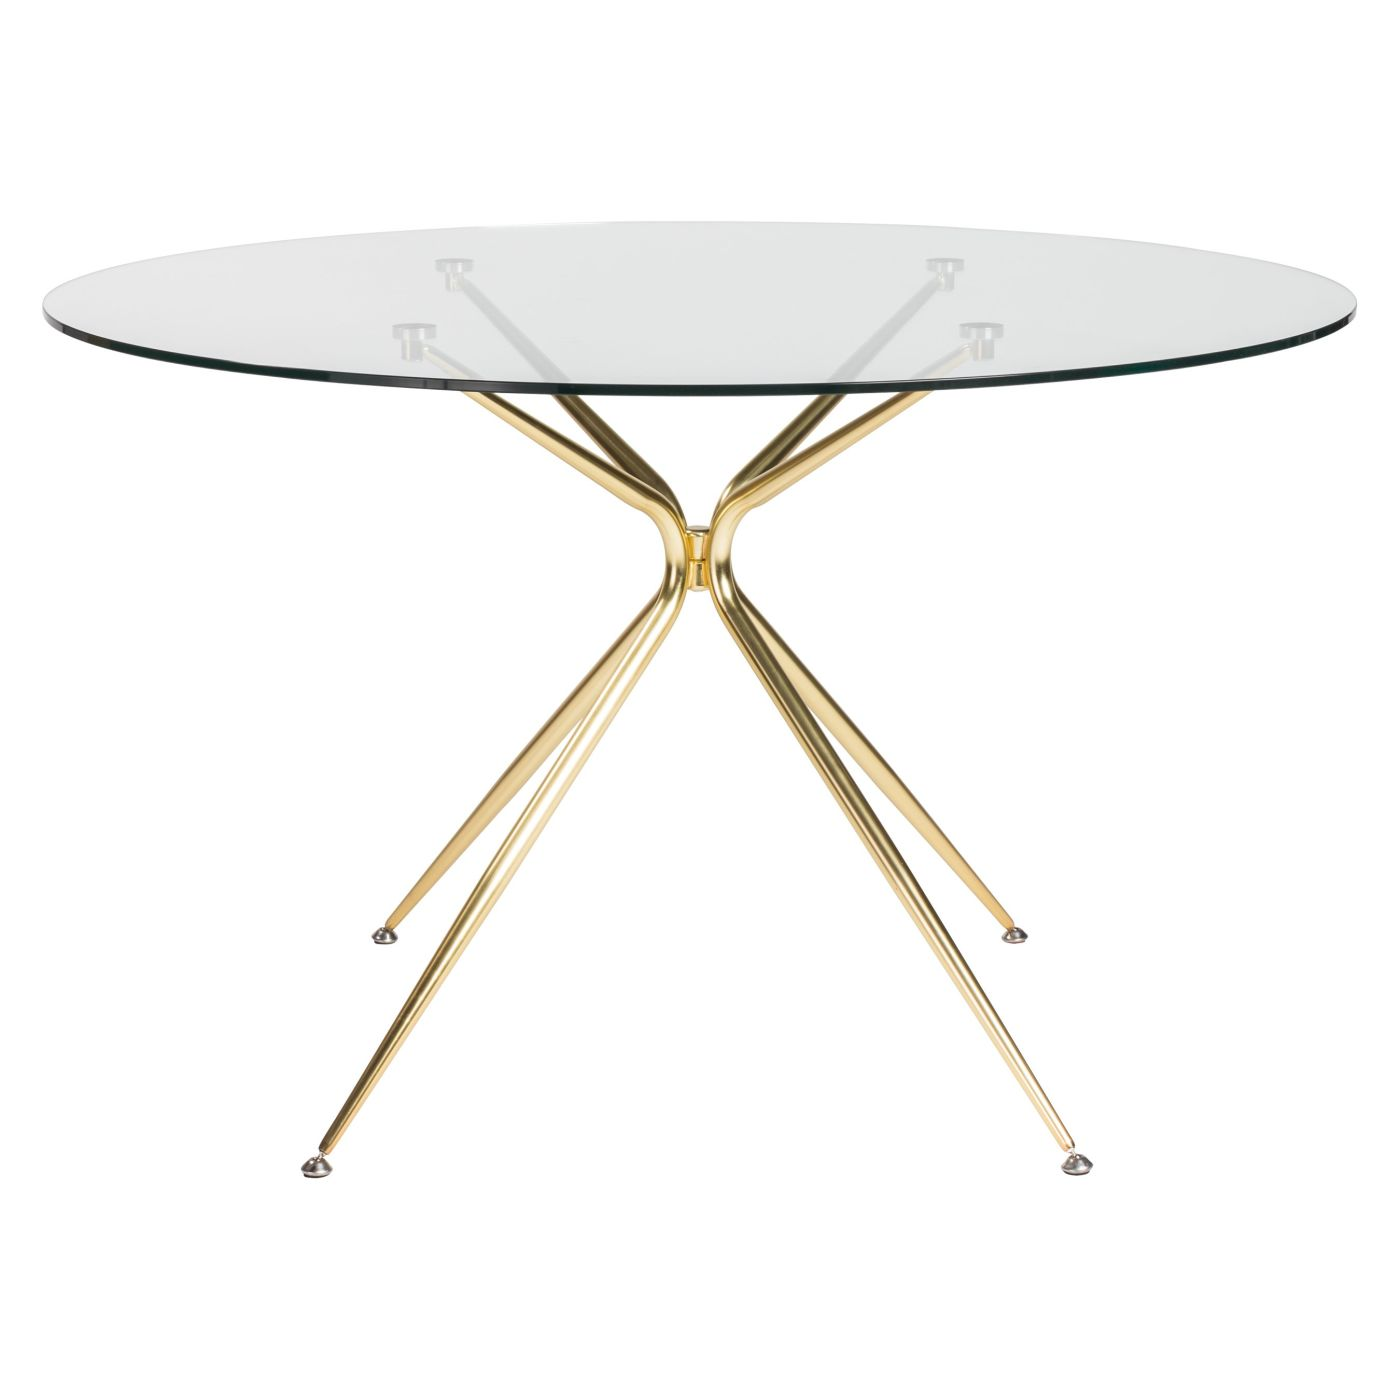 Round Table Base Kit.Buy Euro Style Euro 02506mbg Kit Atos 48 Round Dining Table With Clear Tempered Glass Top And Matte Brushed Gold Base At Contemporary Furniture